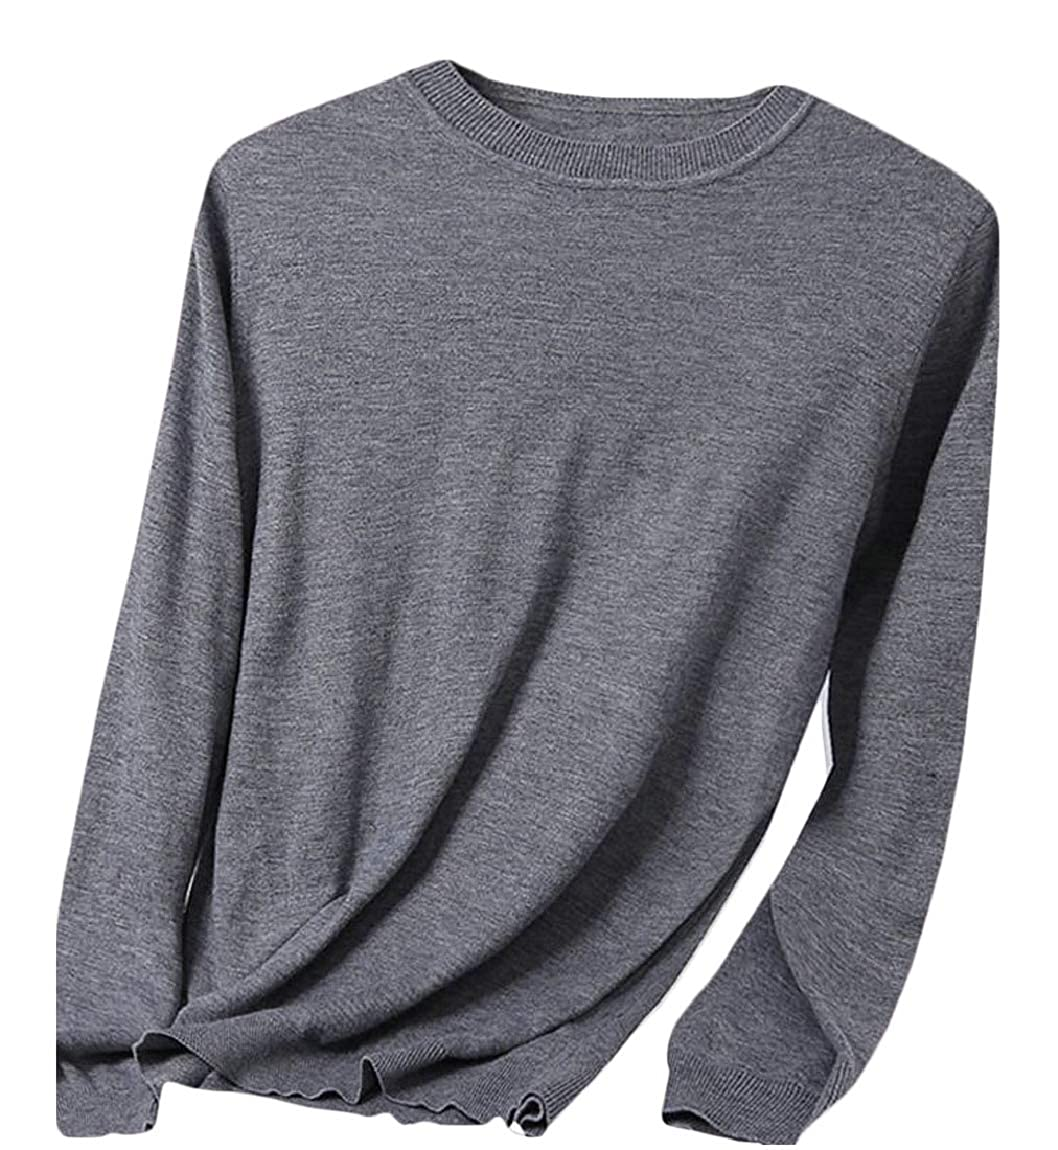 ouxiuli Mens Crewneck Long Sleeve Knitted Pullover Soft Slim Fit Jumper Sweater